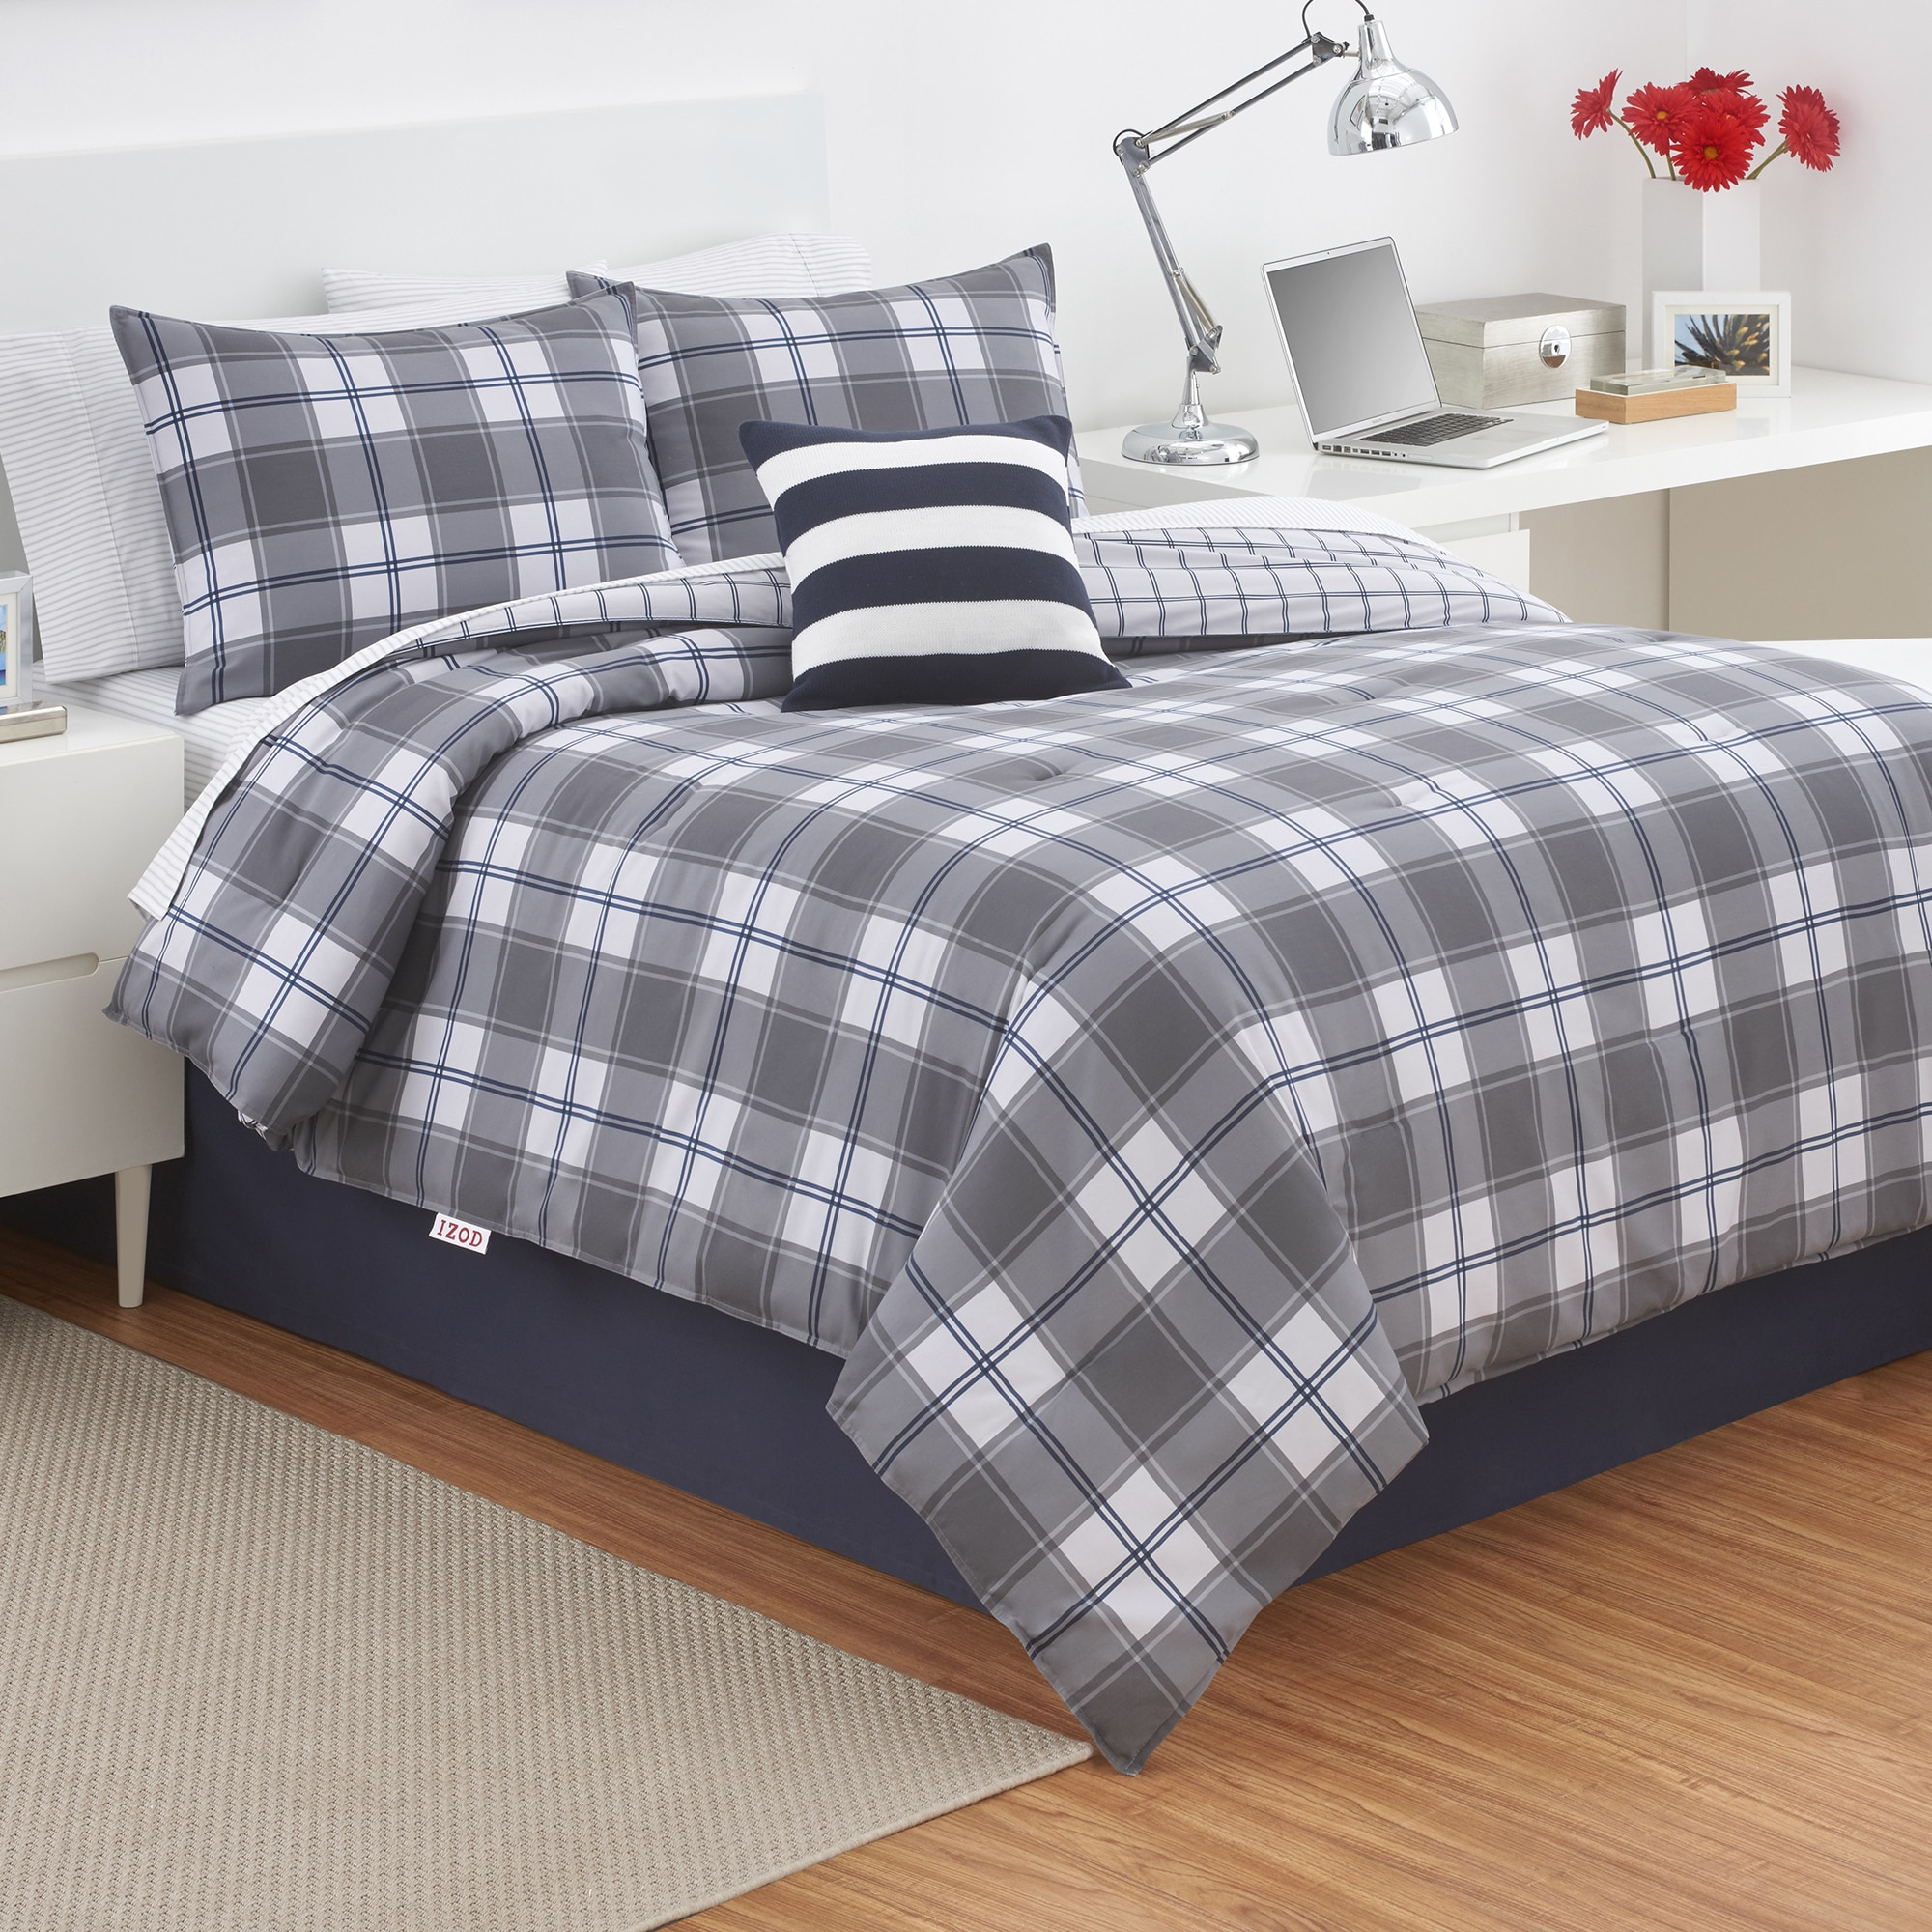 plaid khaki collections com search ivory dillards comforter bedding navy zi home red term